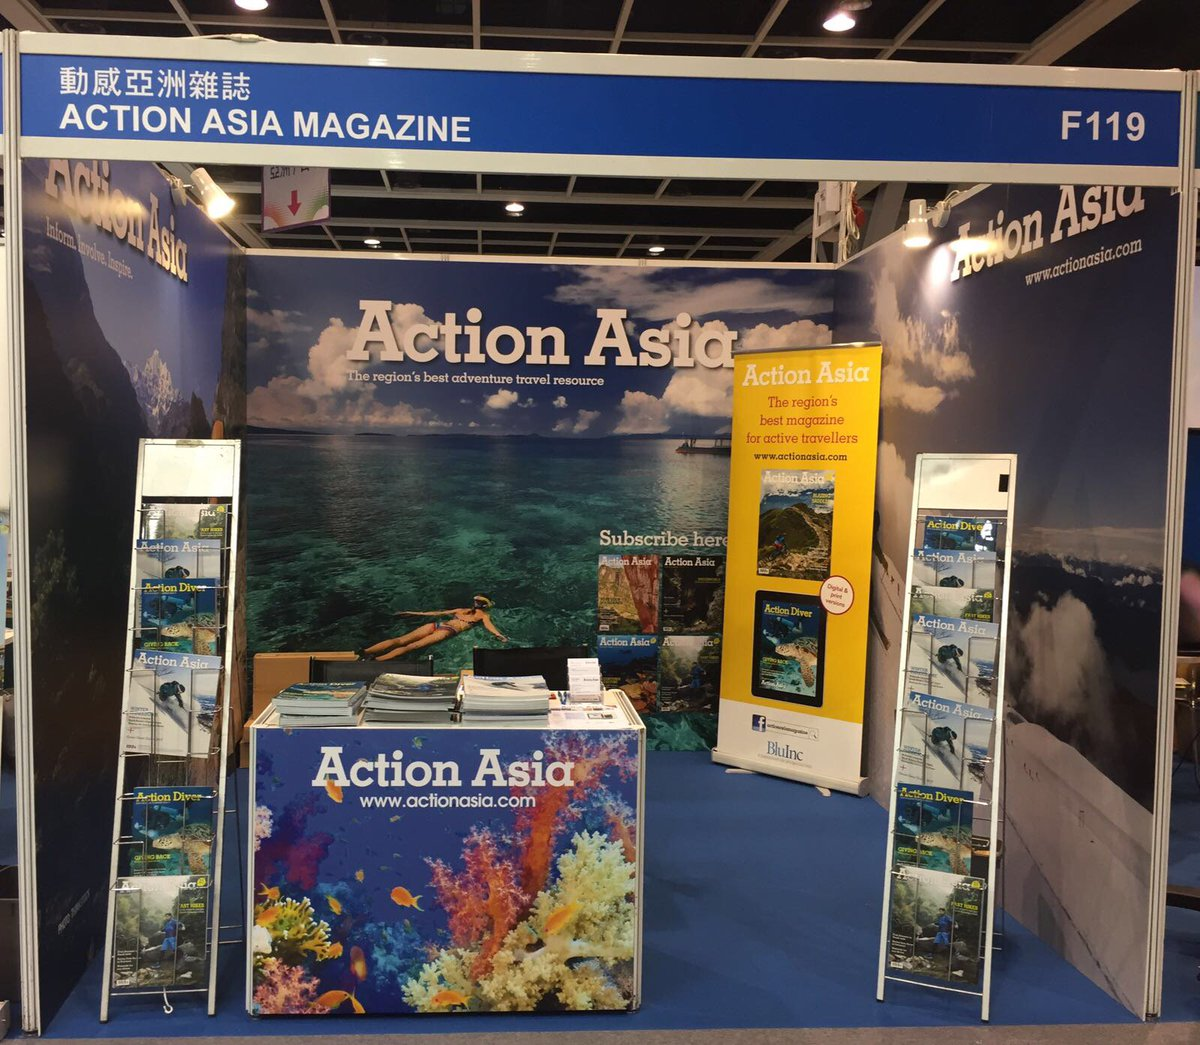 Come on over! We're at International Travel Expo in HK this weekend at HKCEC. #itehk #adventuretravel #actionasia